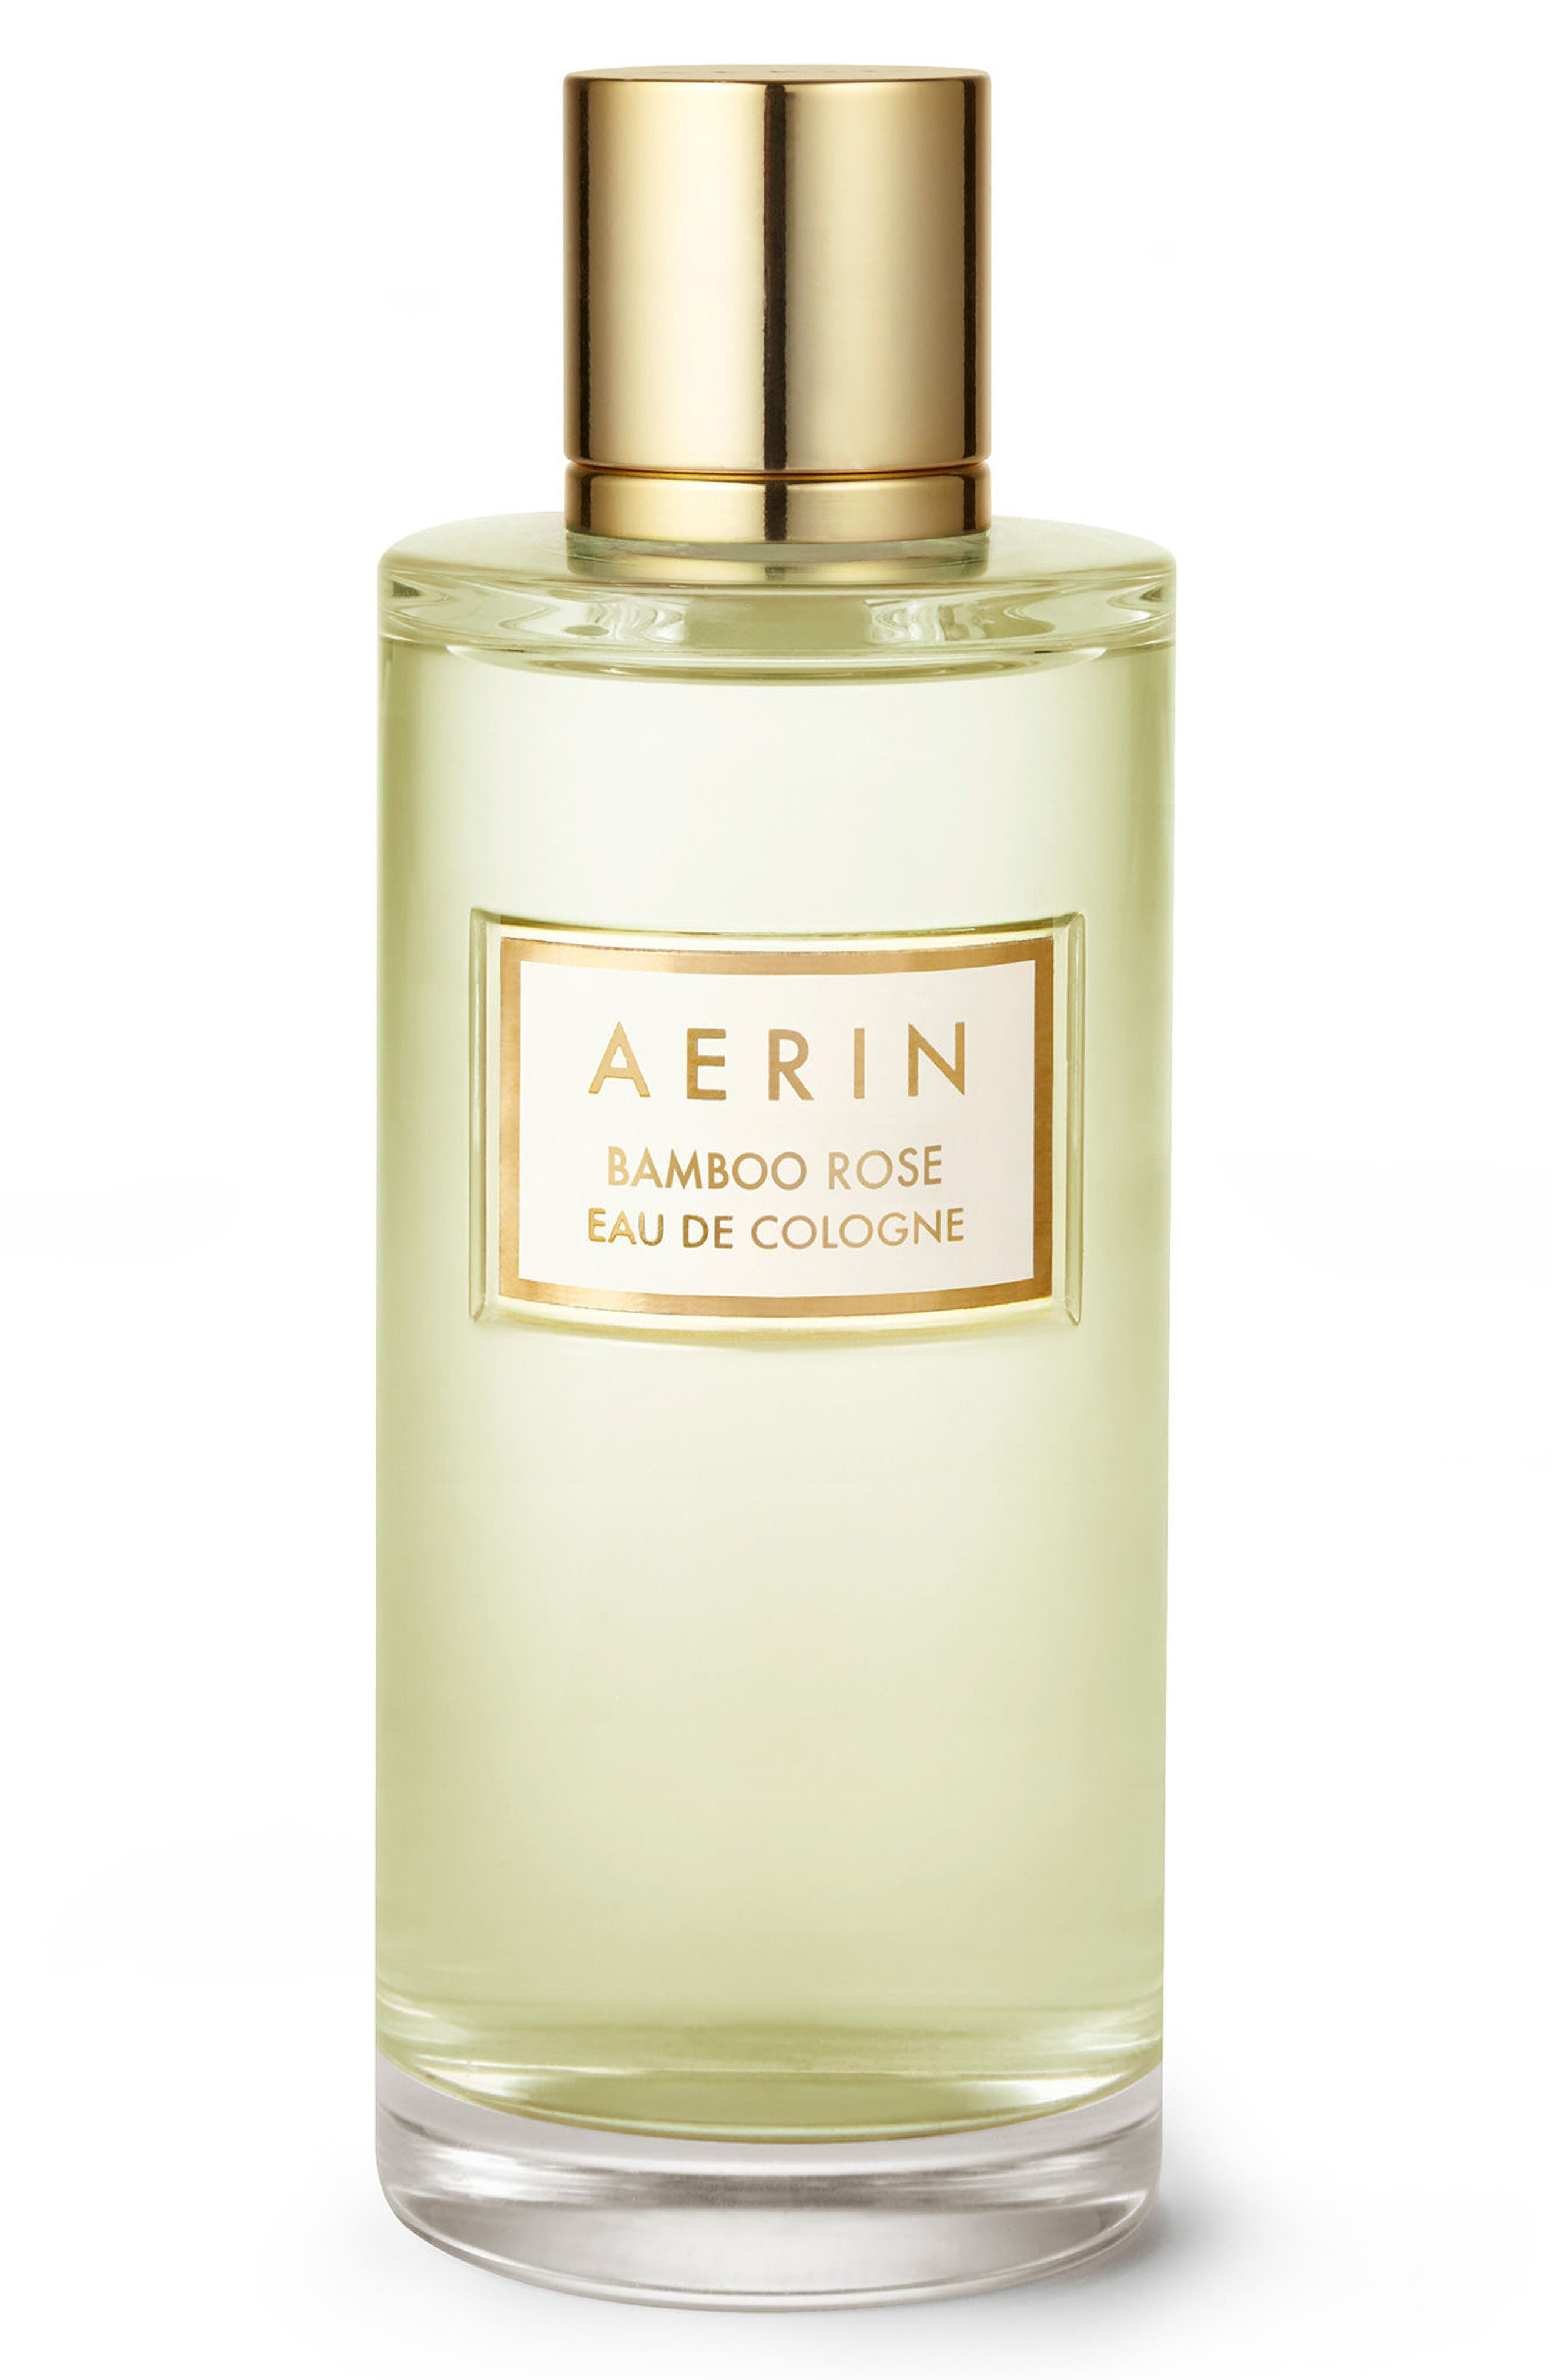 AERIN Beauty Bamboo Rose Eau de Cologne,                             Main thumbnail 1, color,                             NO COLOR